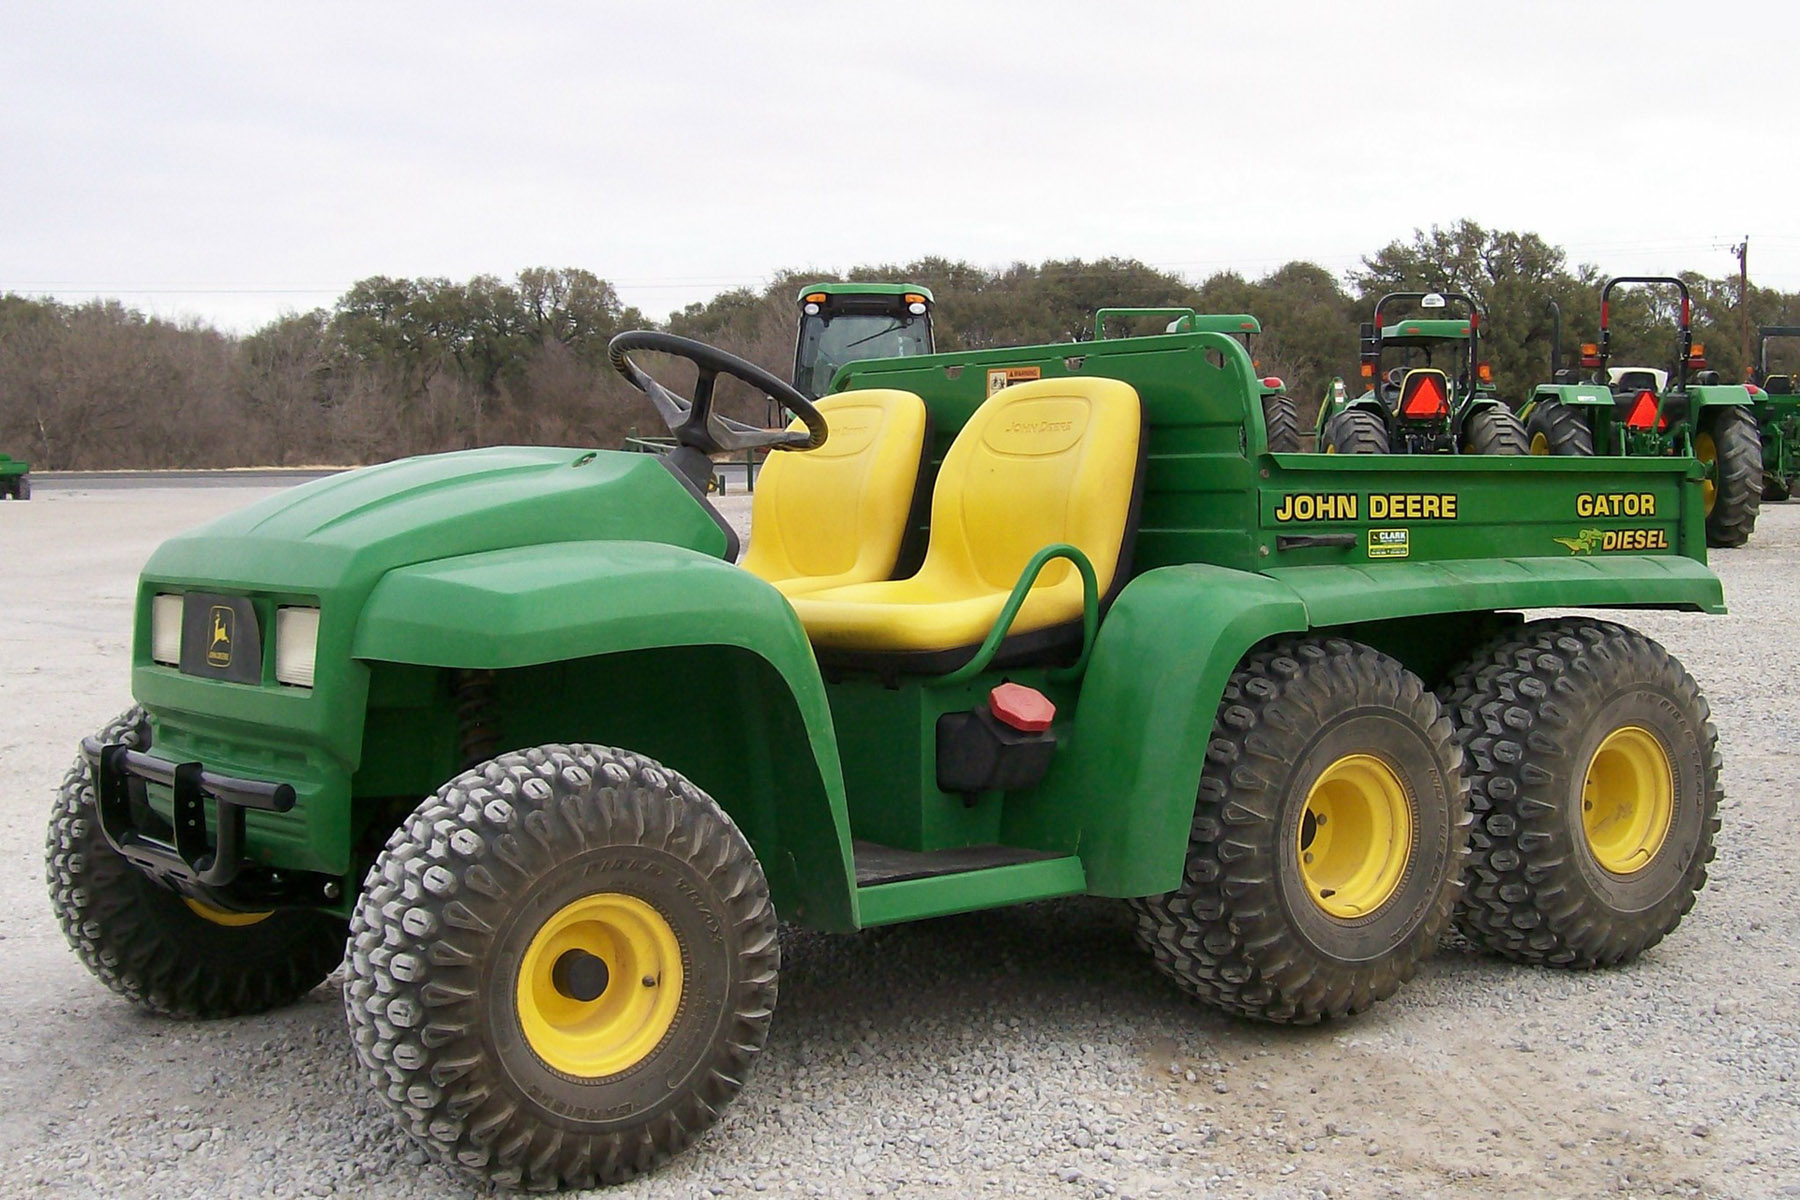 john deere gator picture - photo #19